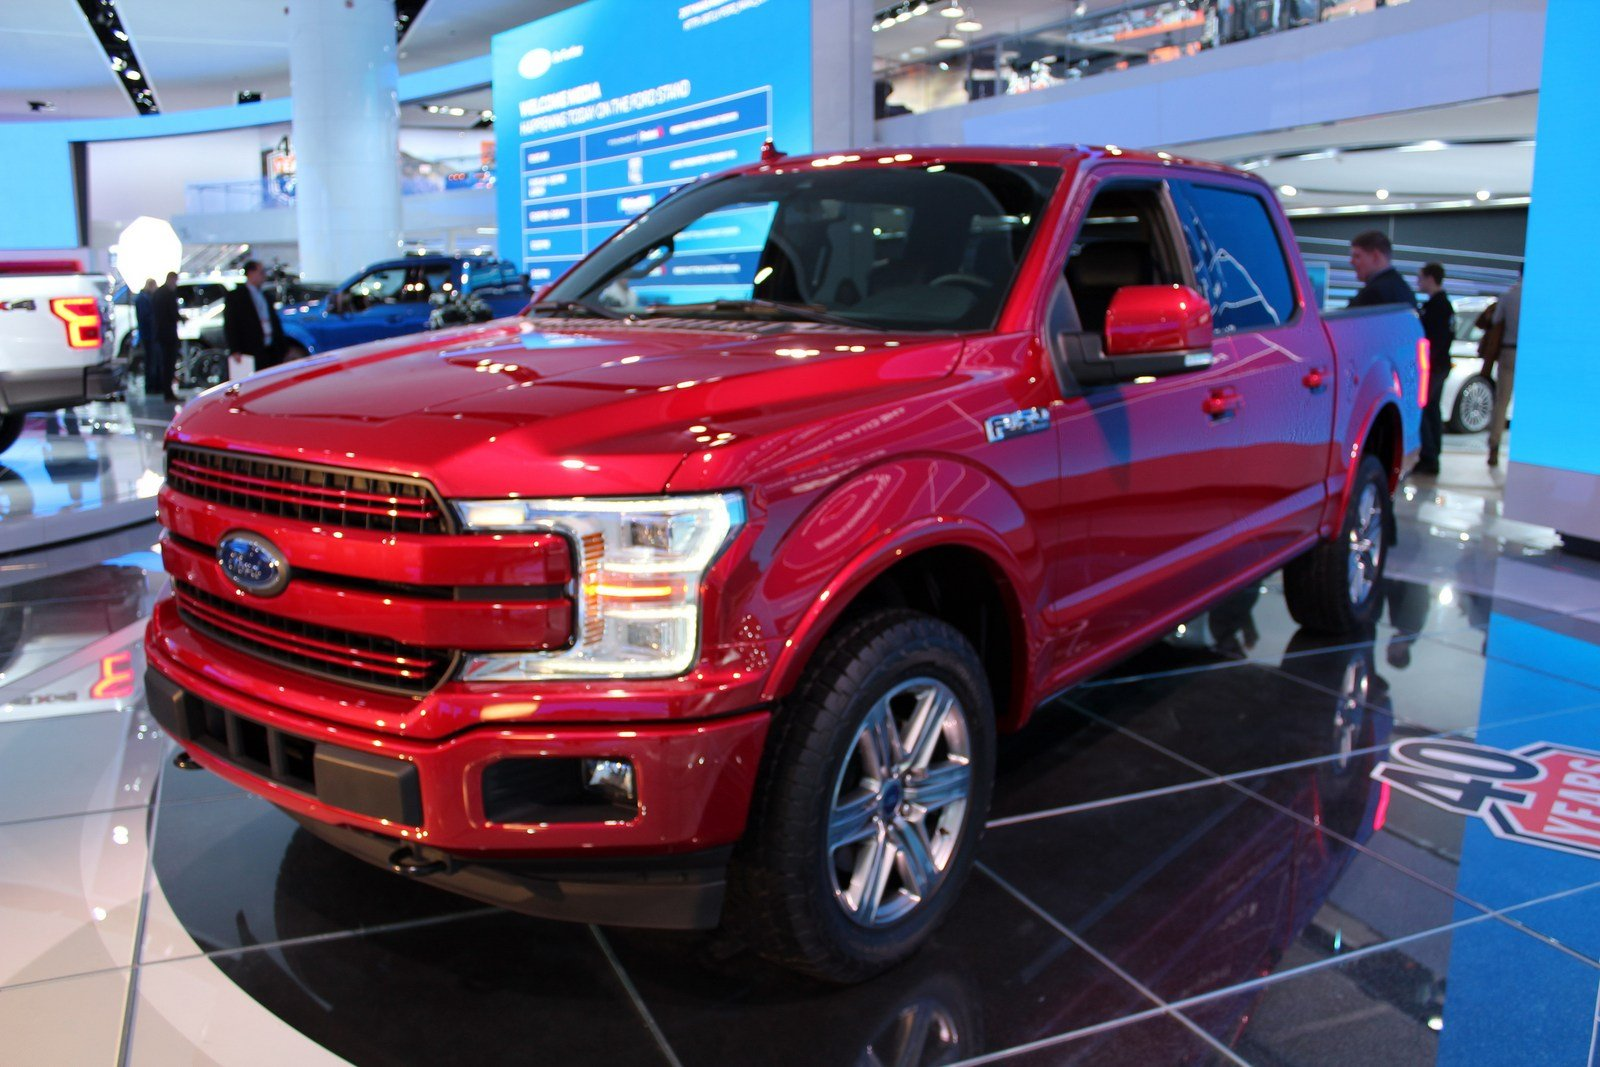 2018 ford f 150 picture 700987 truck review top speed. Black Bedroom Furniture Sets. Home Design Ideas